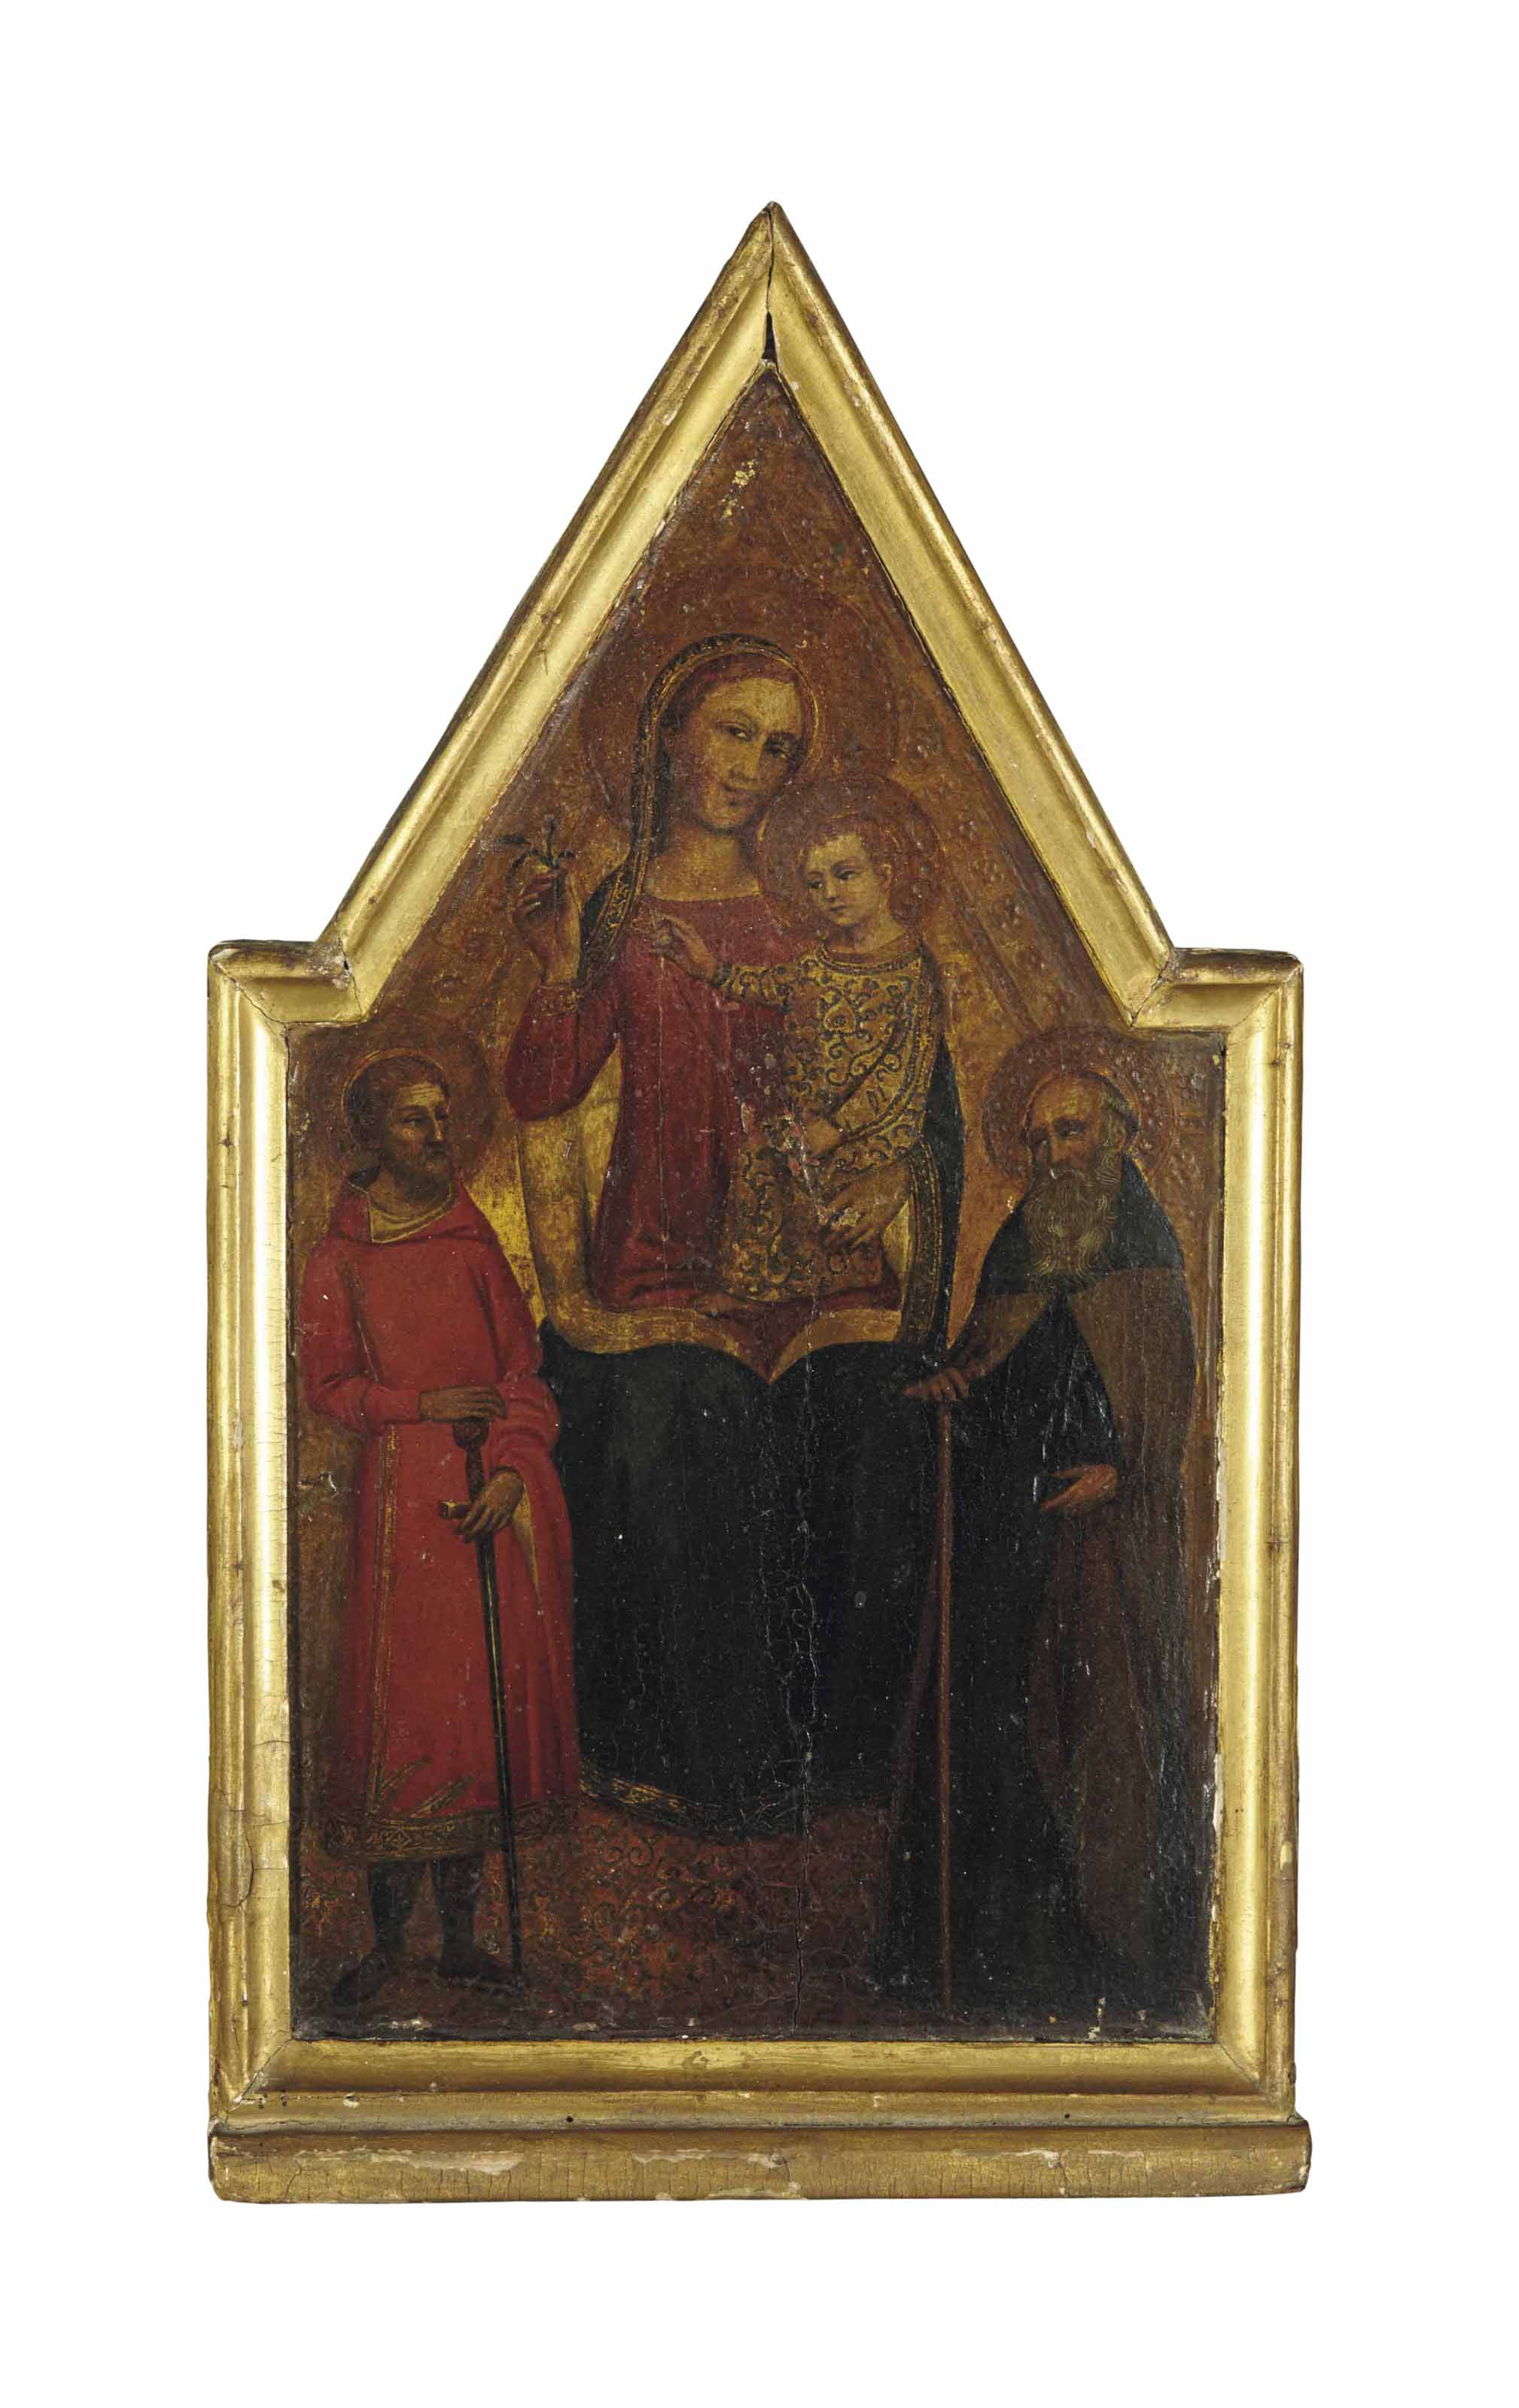 The Madonna and Child enthroned, with Saints Paul and Anthony Abbot